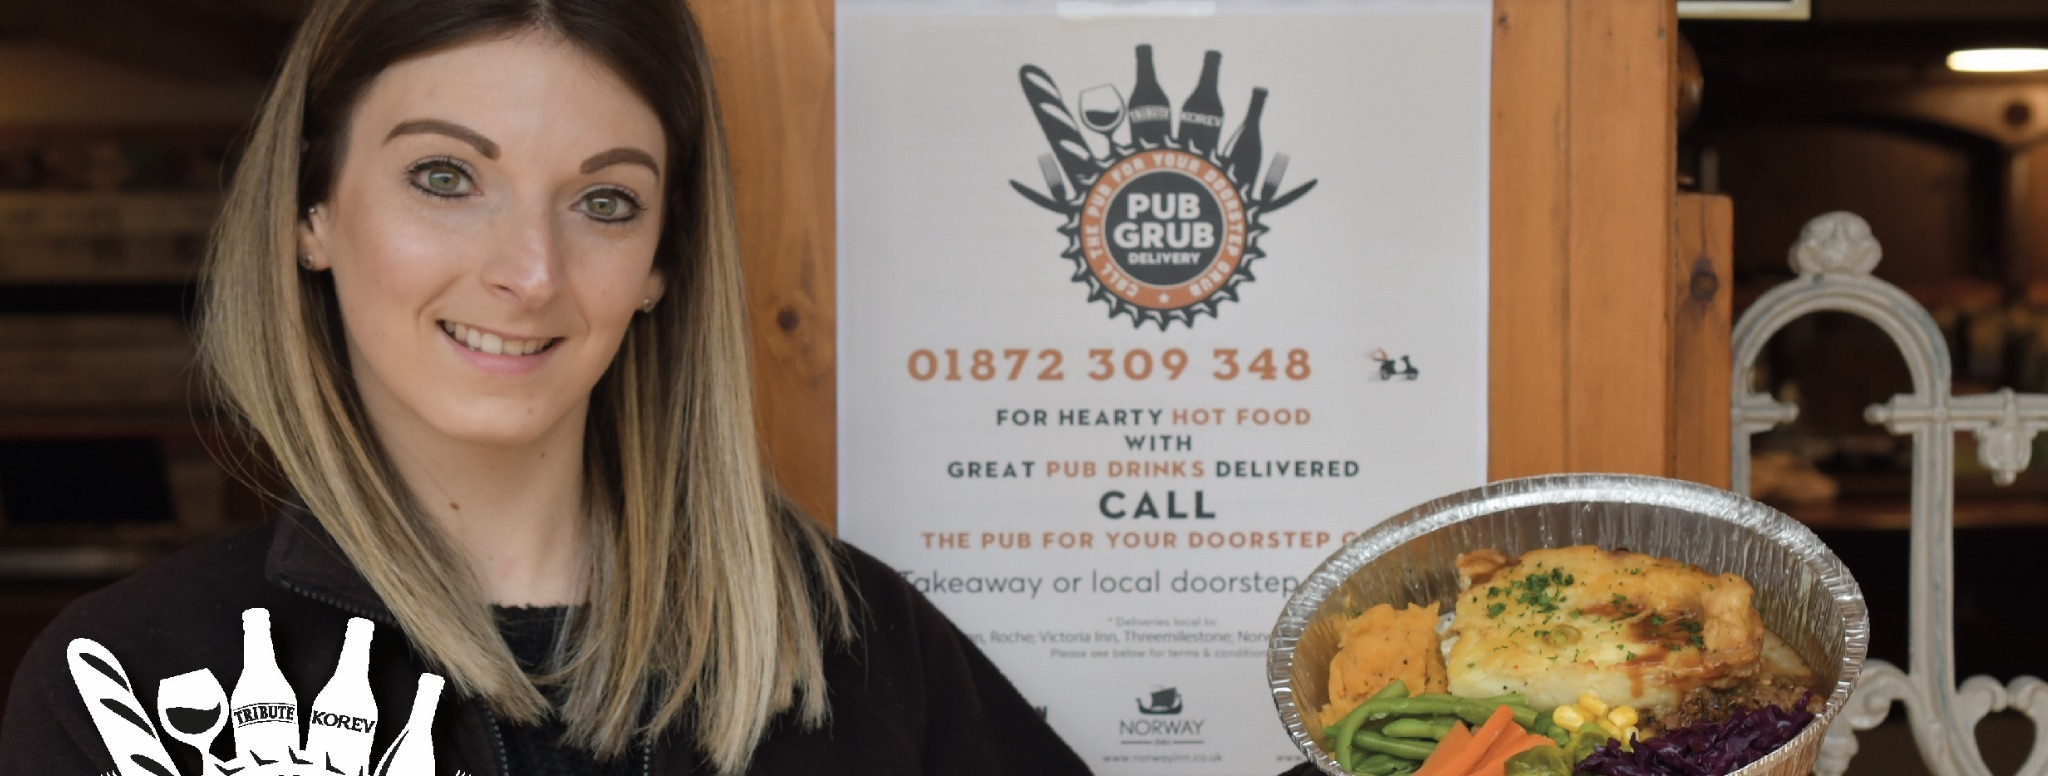 Online Order/Delivery A Hit For Pubs & Bars